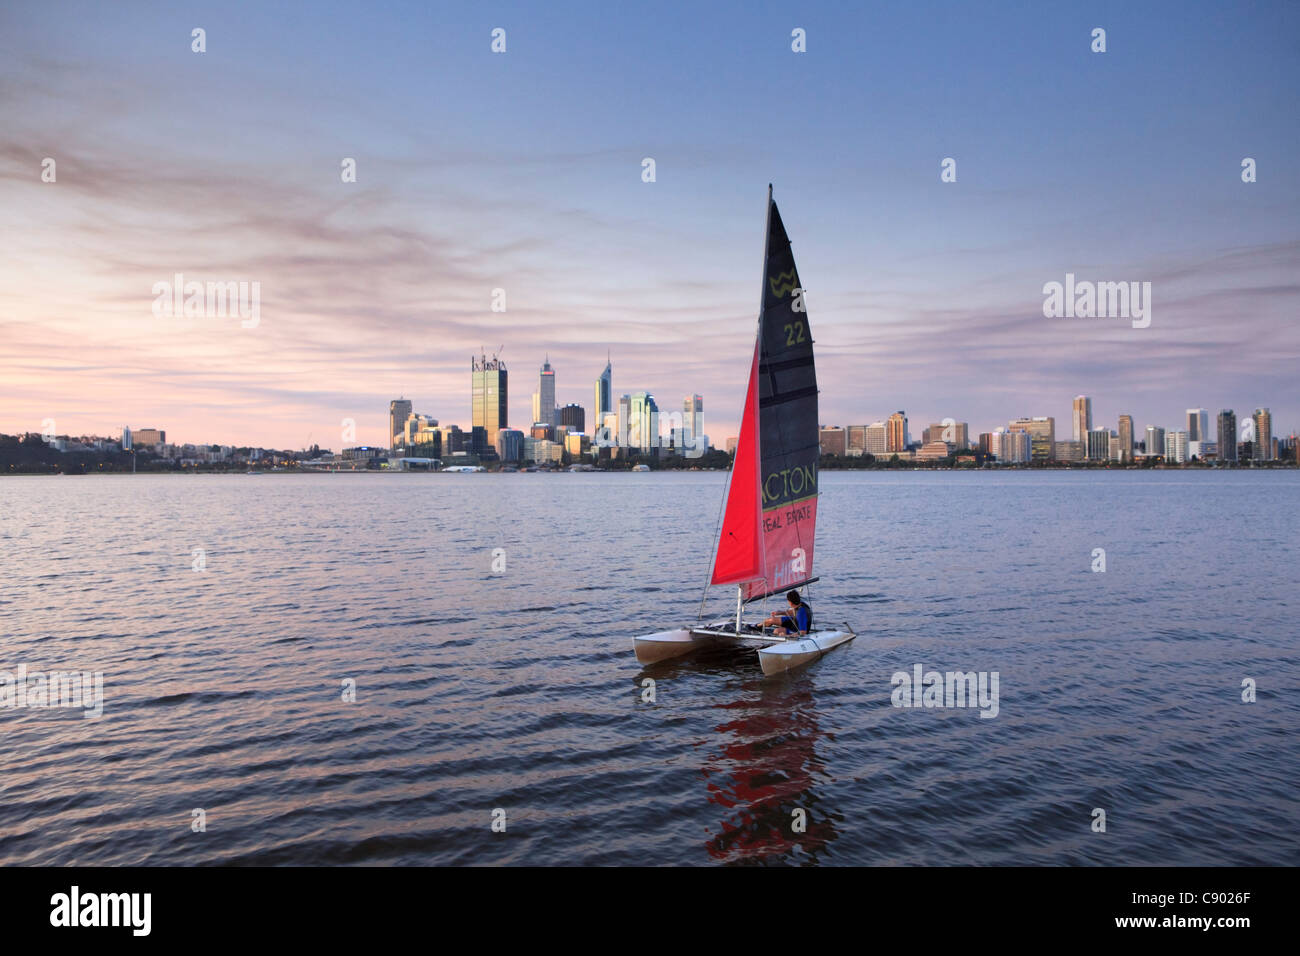 Catamaran sailing boat on the Swan River at sunset with the city in the distance. - Stock Image